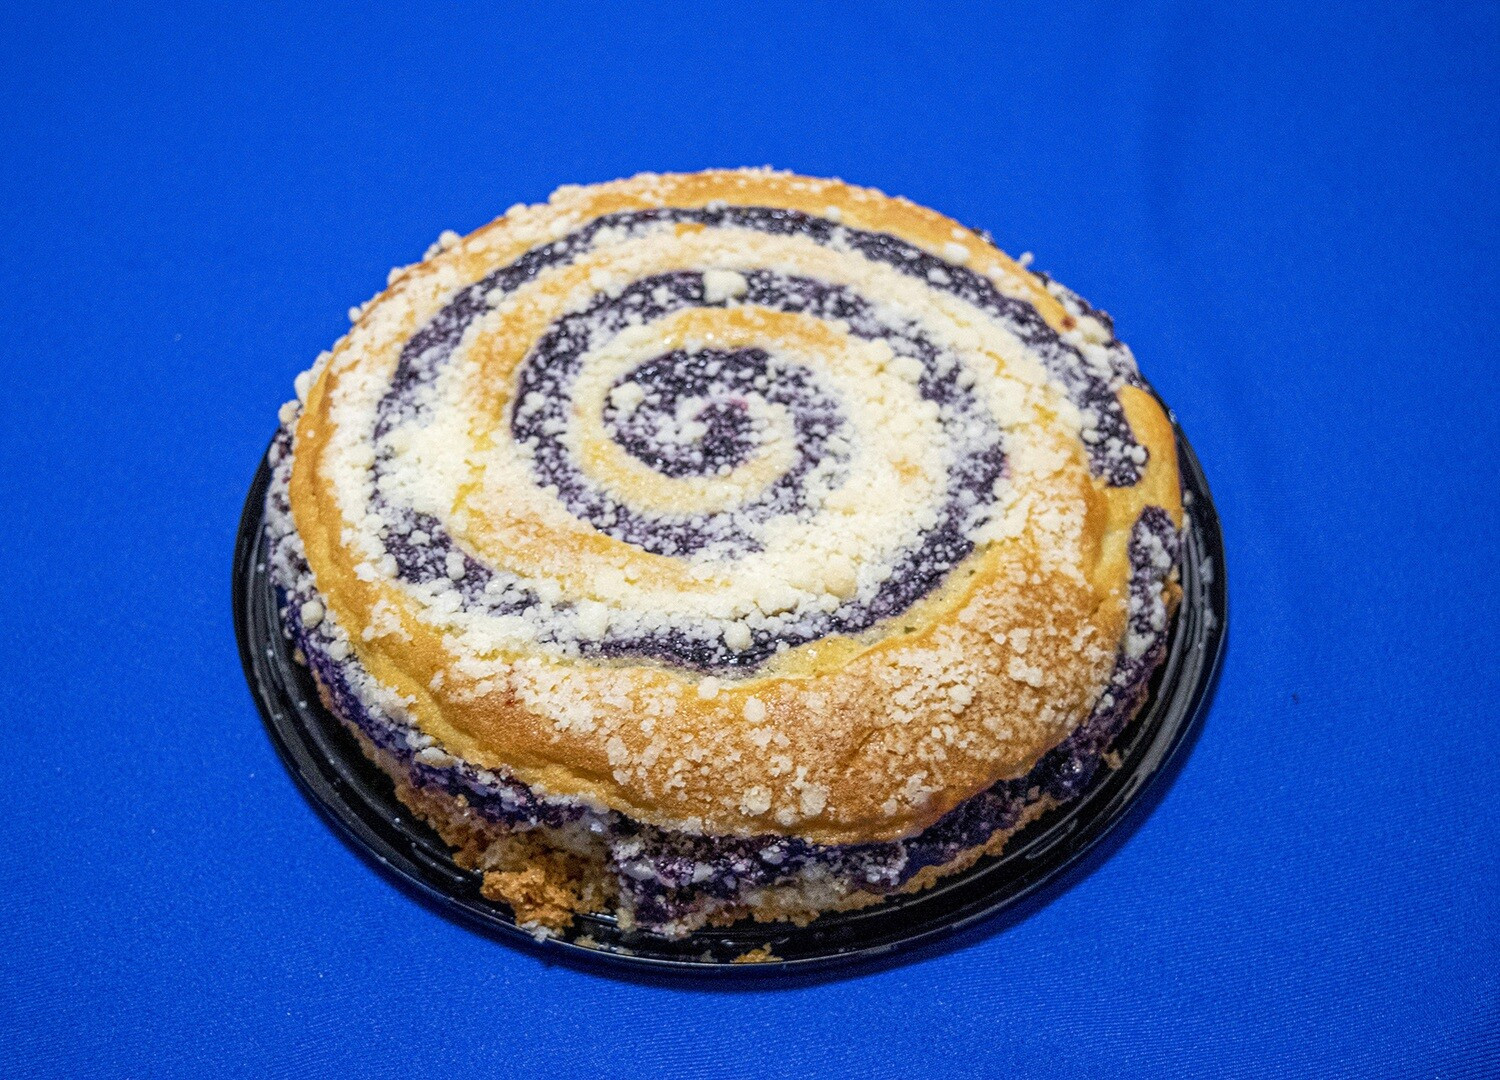 Dave's Coffee Cake - Blueberry